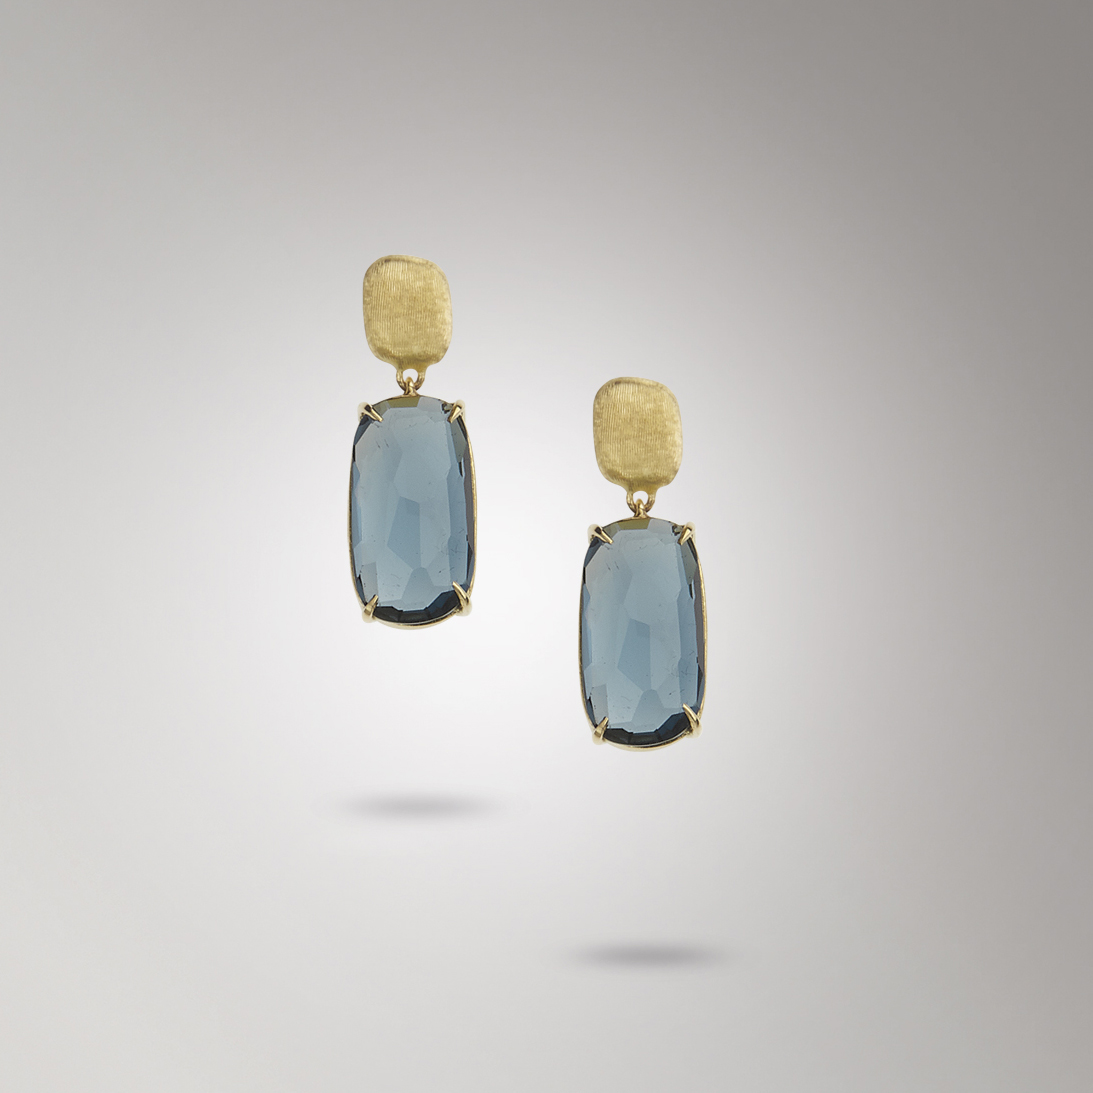 Marco Bicego Murano London Blue Topaz Earrings